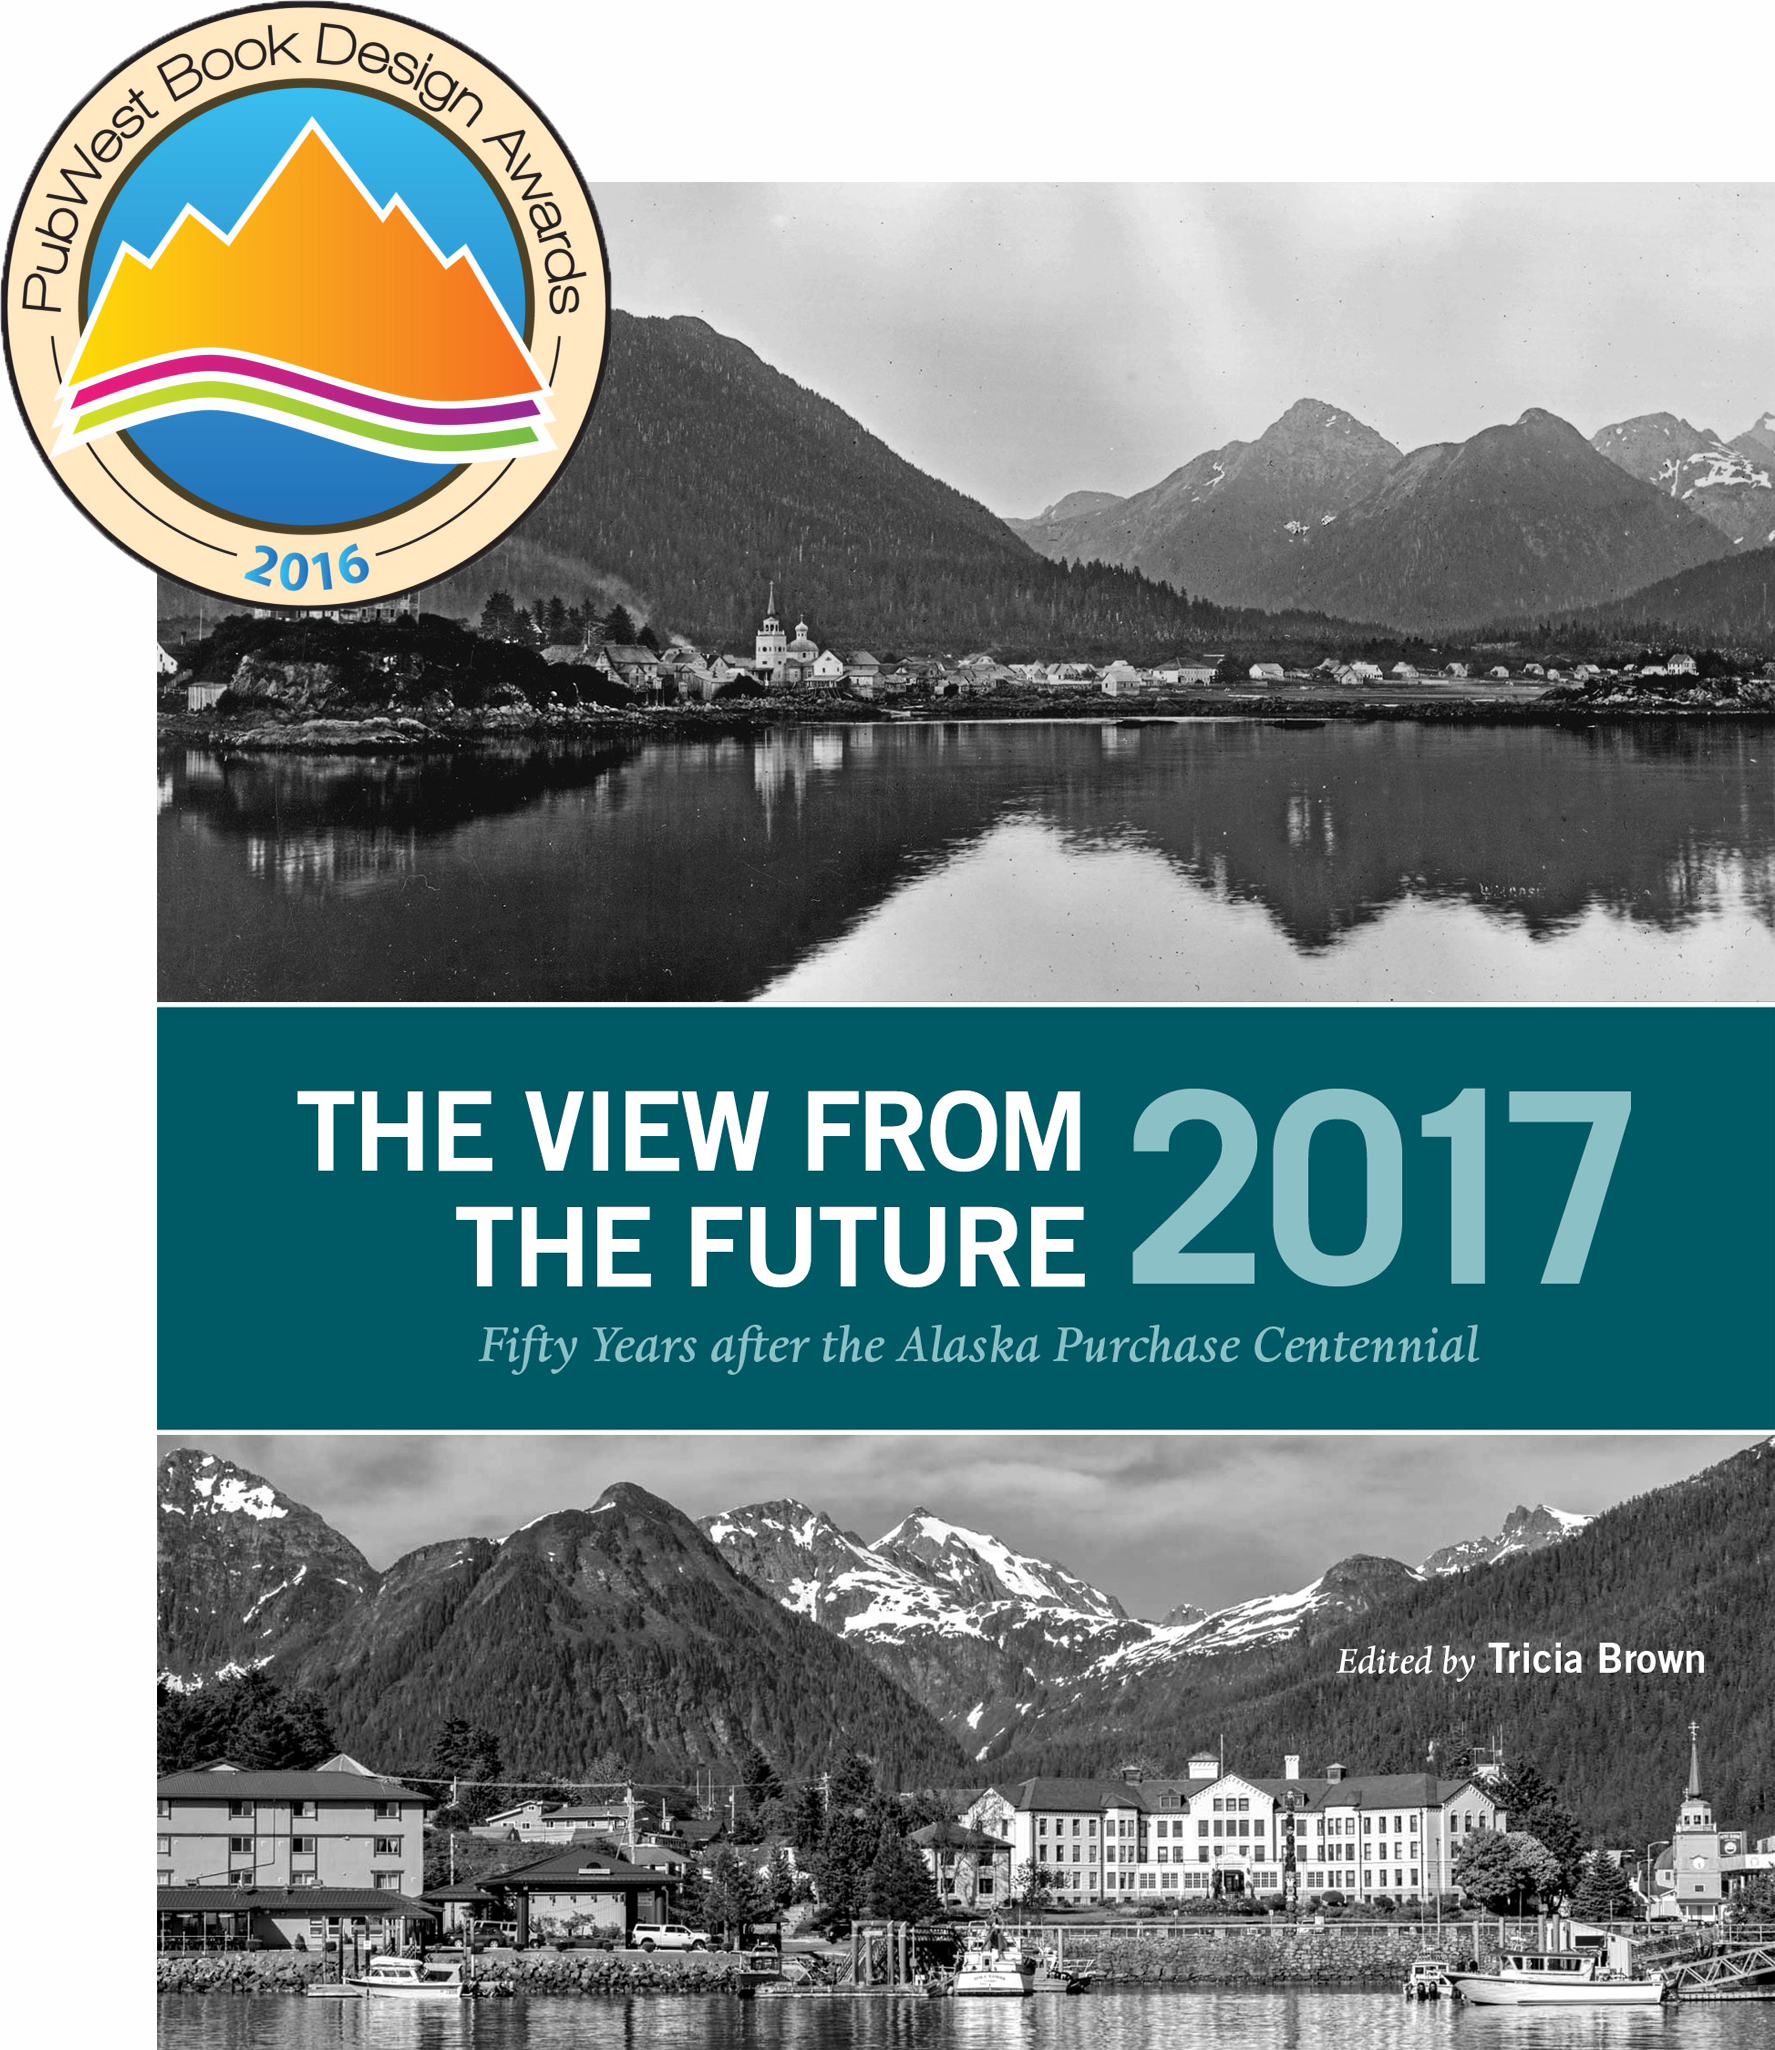 The View From the Future—2017